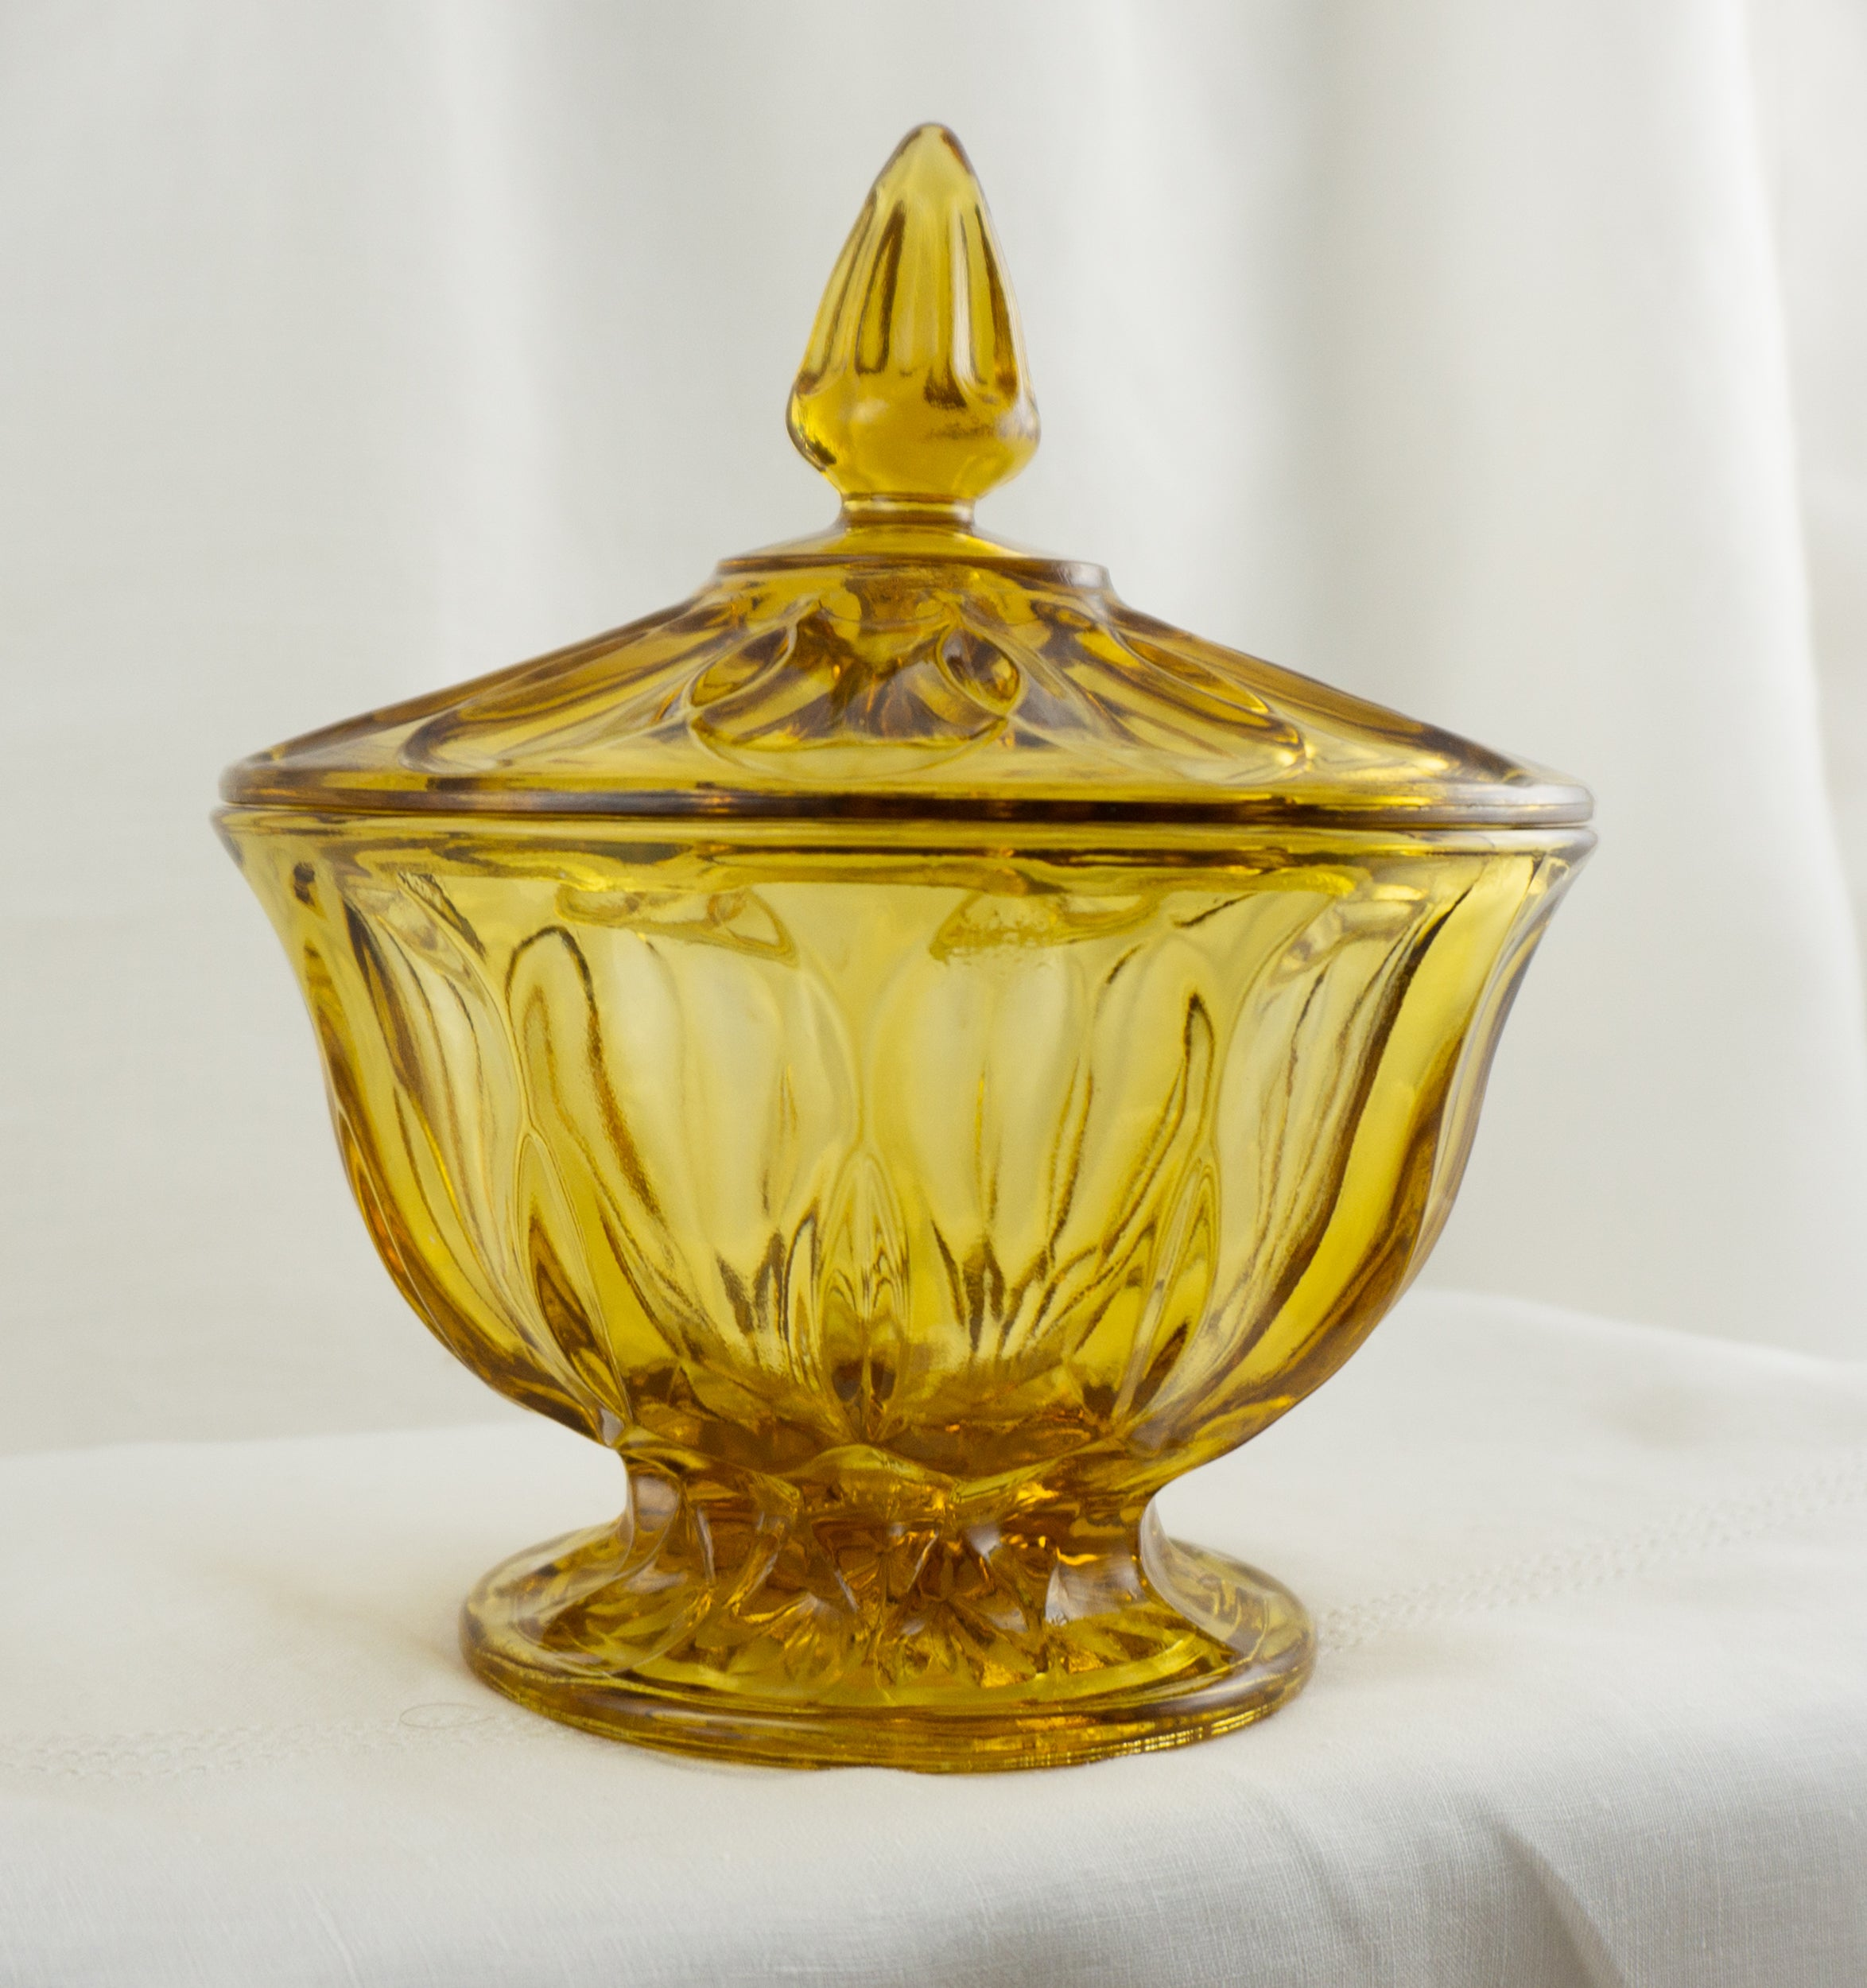 Fairfield Amber by ANCHOR HOCKING Footed Candy Dish with Lid